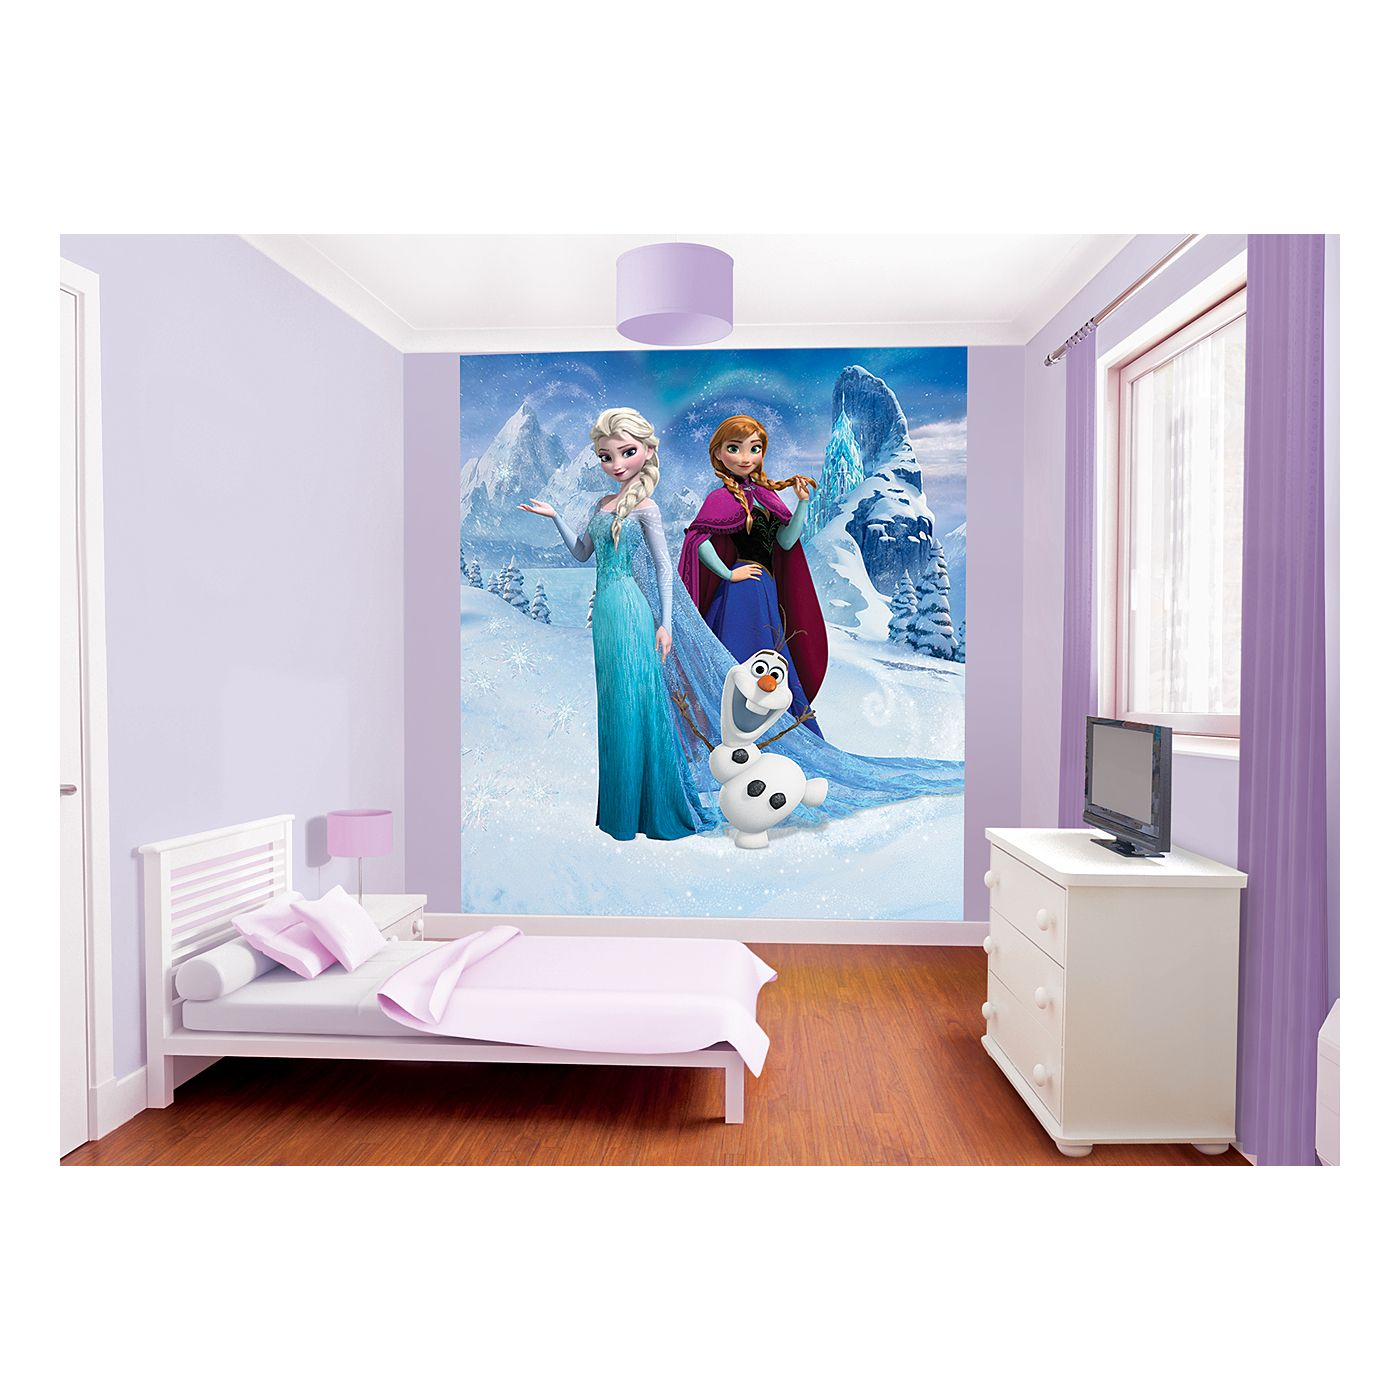 Disney frozen wallpaper mural asda girls 39 room for Disney princess mural asda